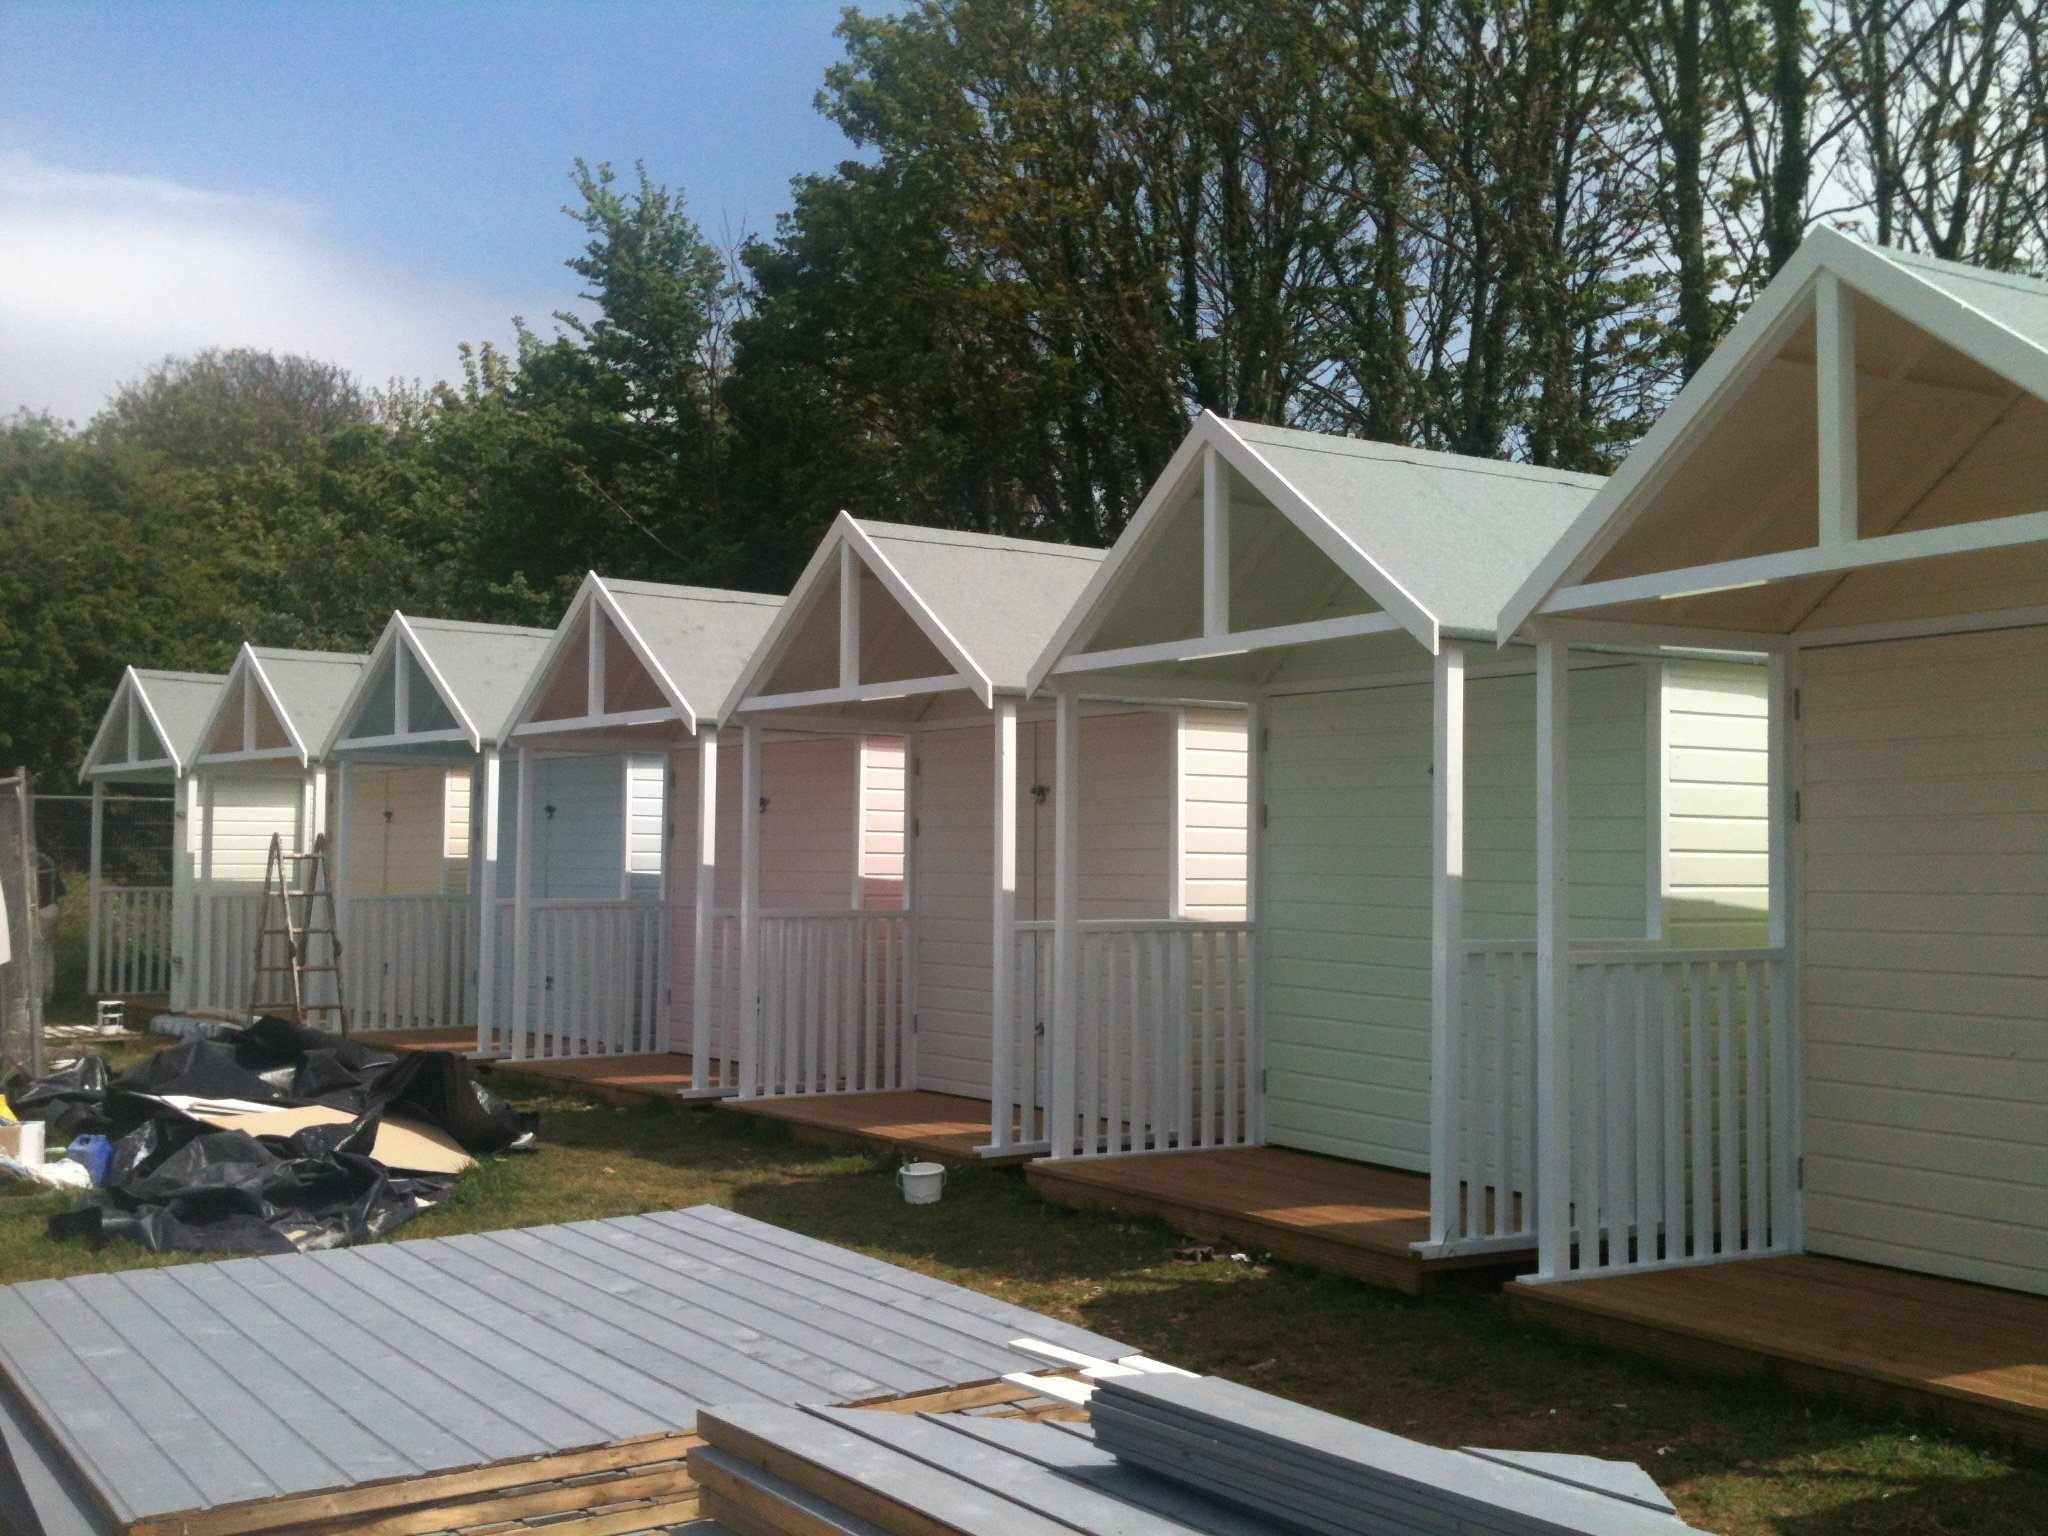 Design & Build Beach Huts